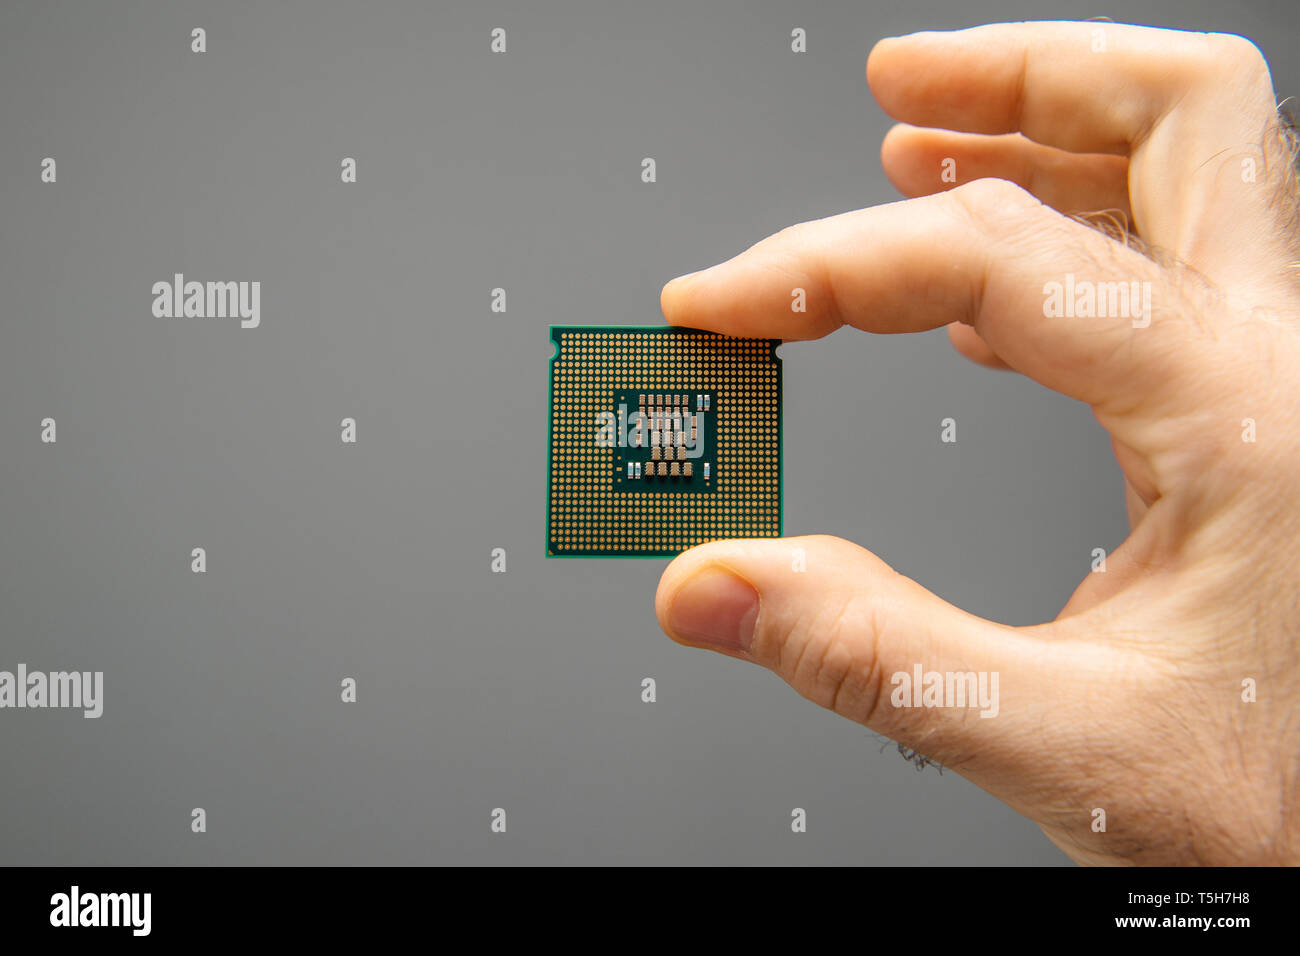 Male hand holding new powerful CPU Central processing unit with high core count and elevated frequency - isolated on gray office background - Stock Image